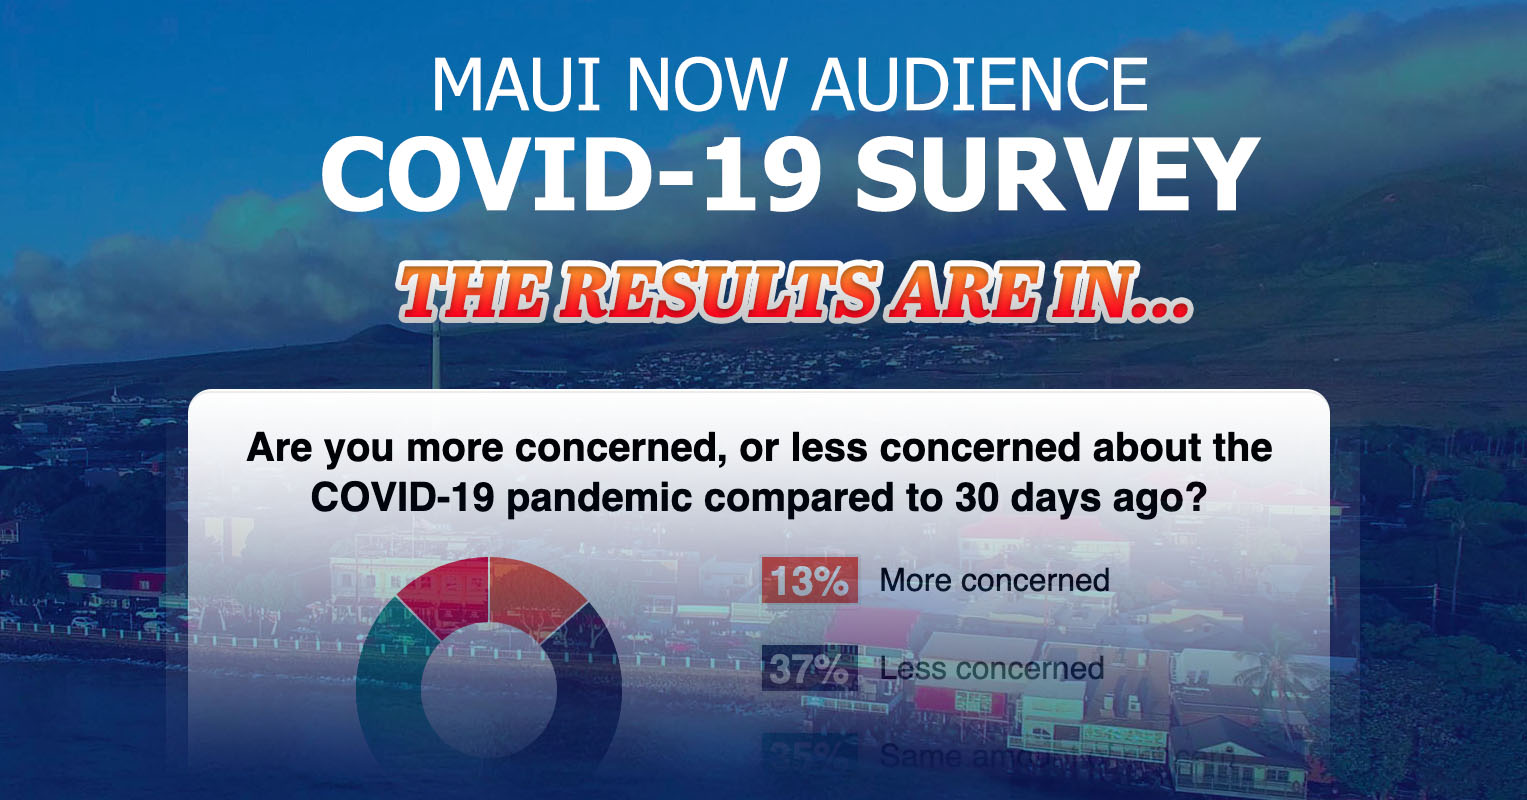 Maui Now COVID-19 Audience Survey: The Results